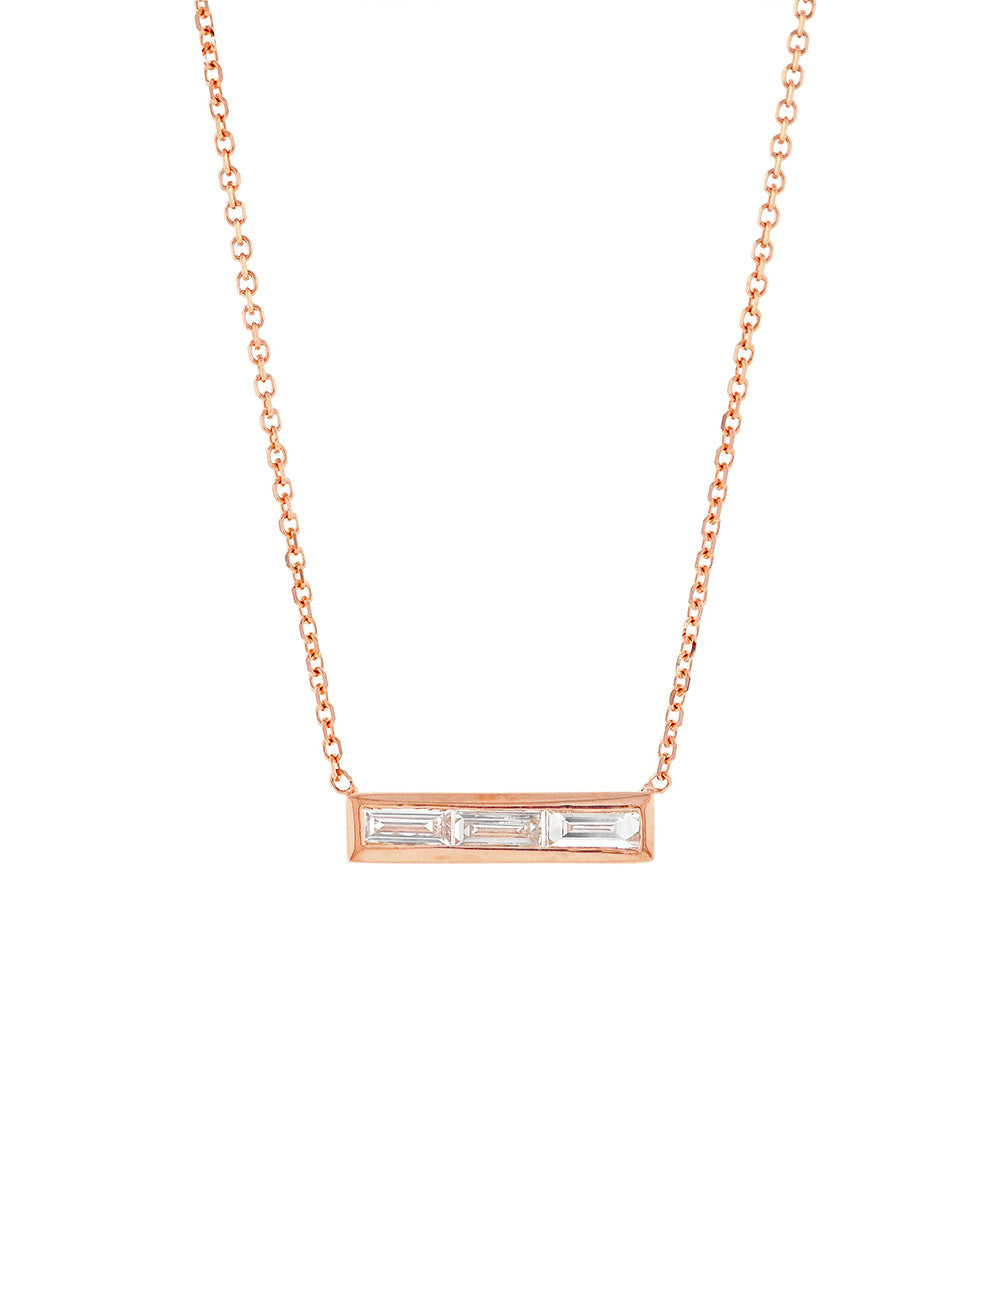 Triple Diamond Baguette Bar Necklace